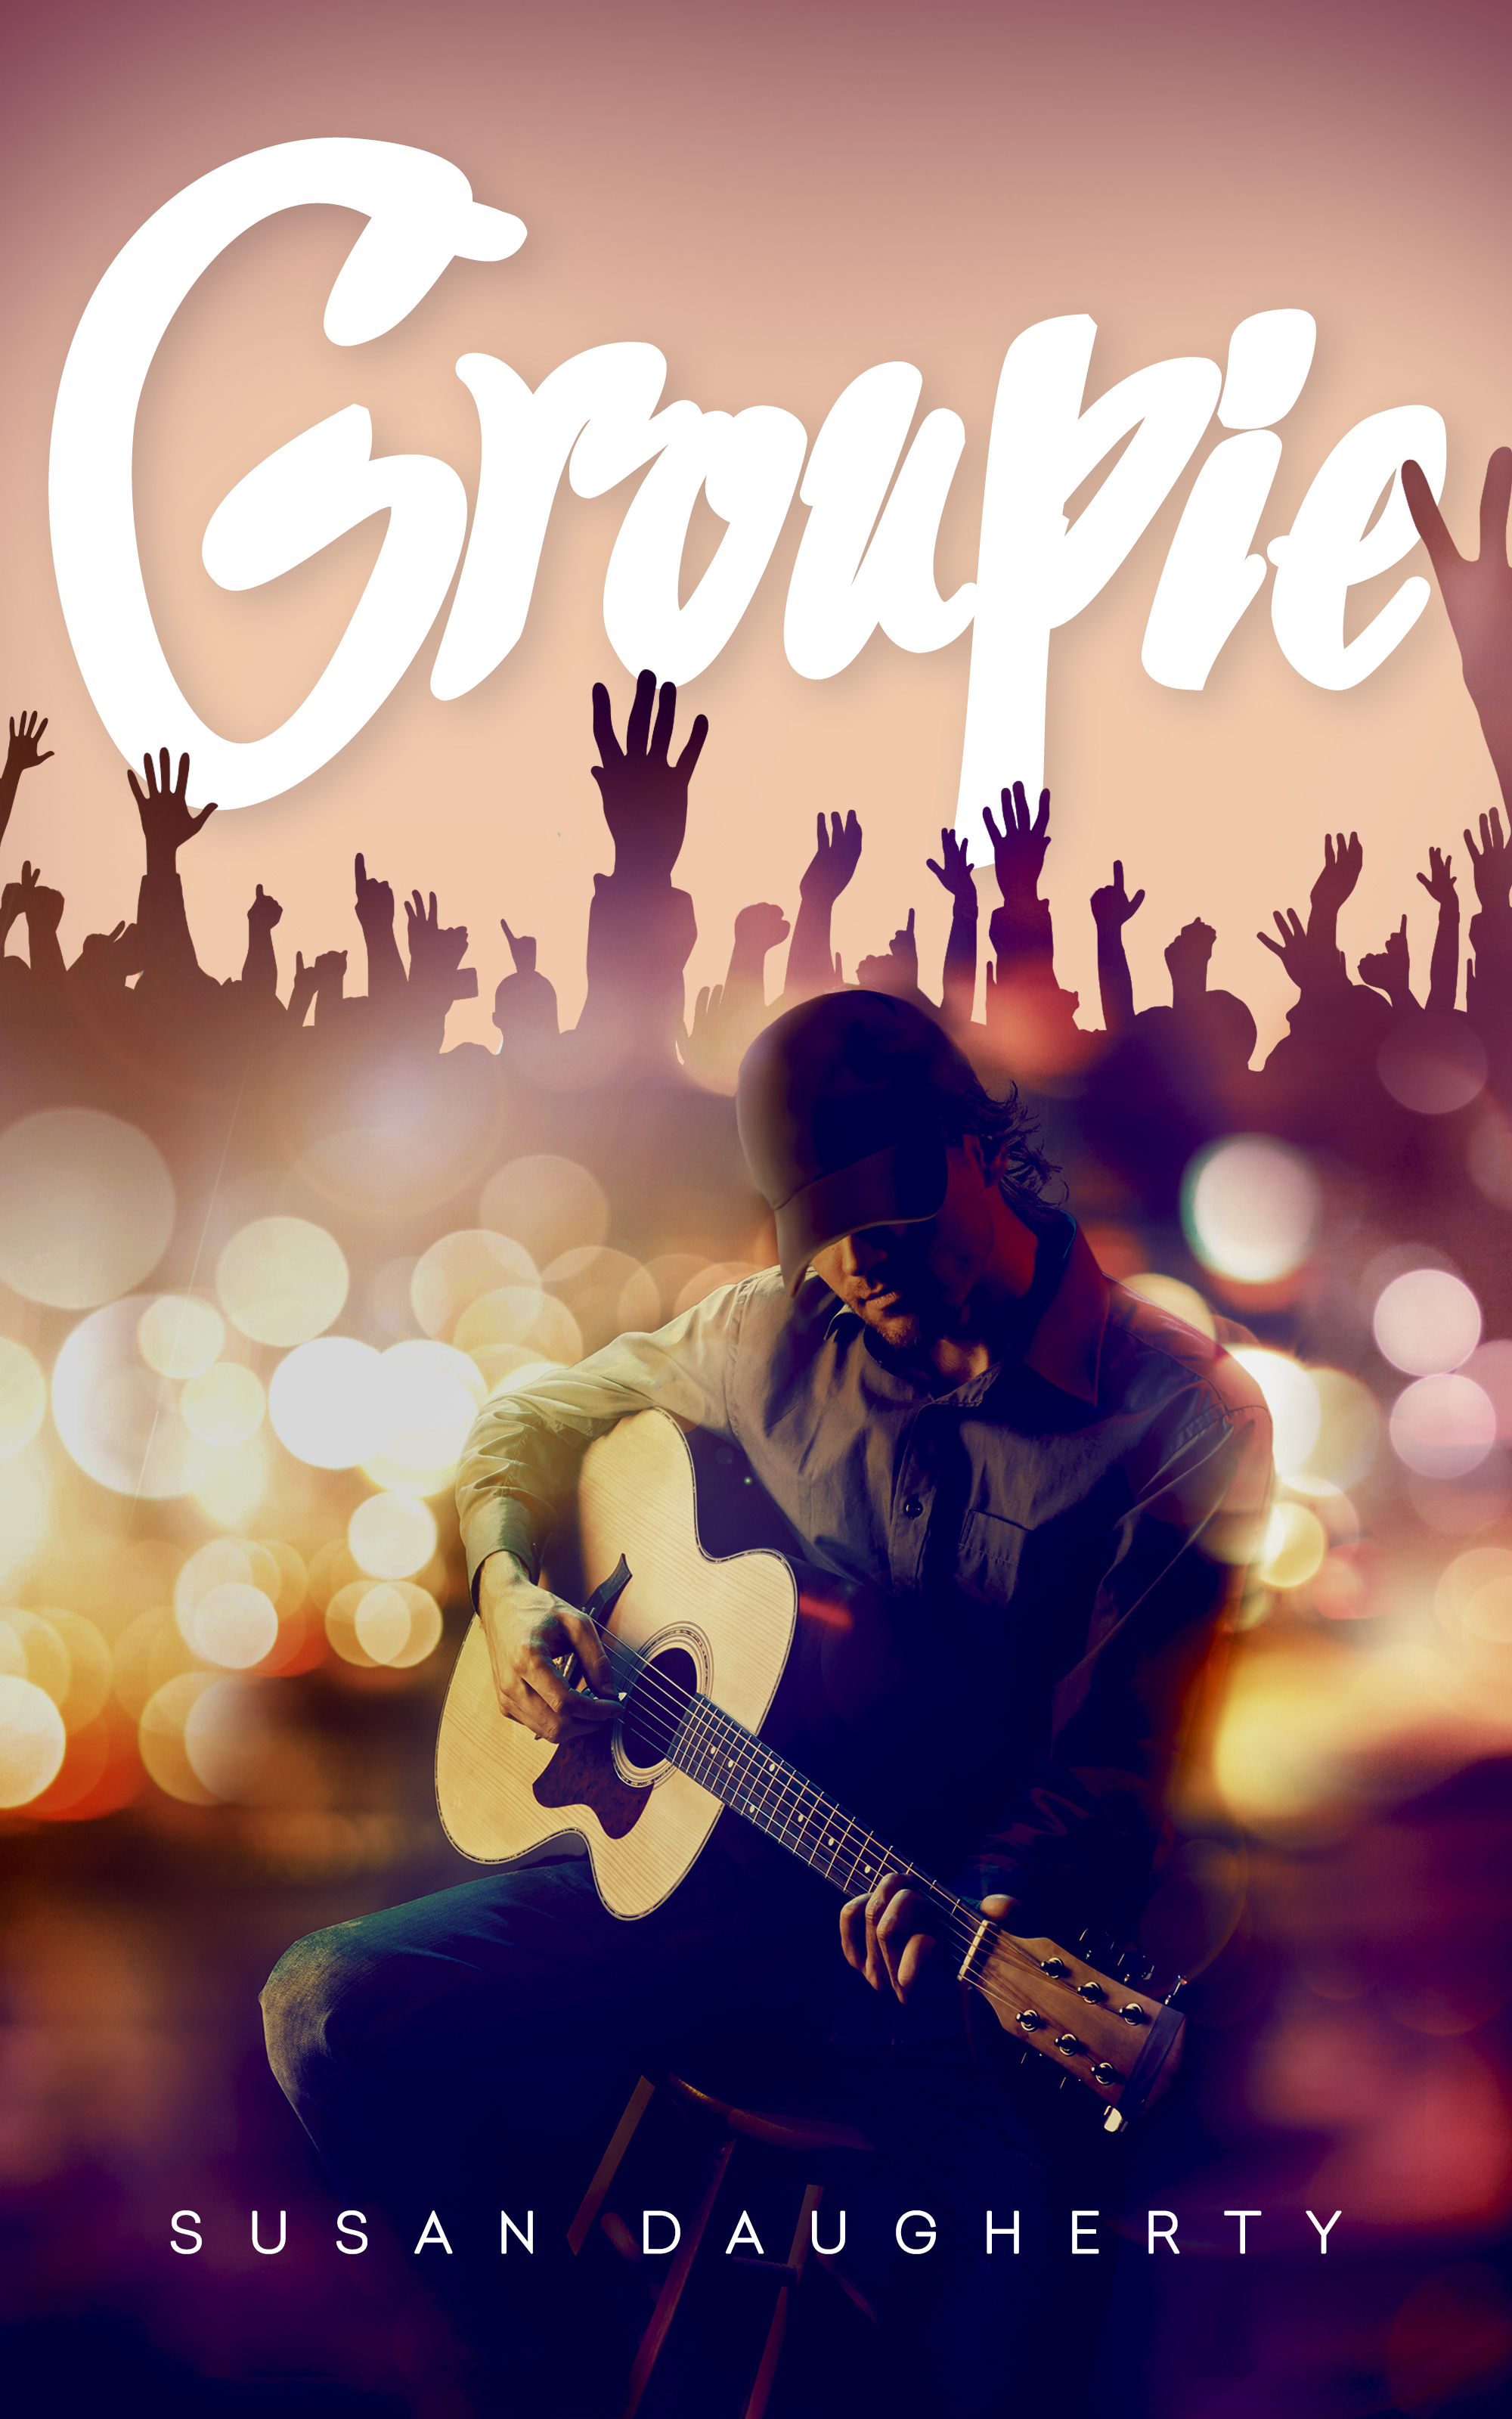 Groupie by Susan Daugherty